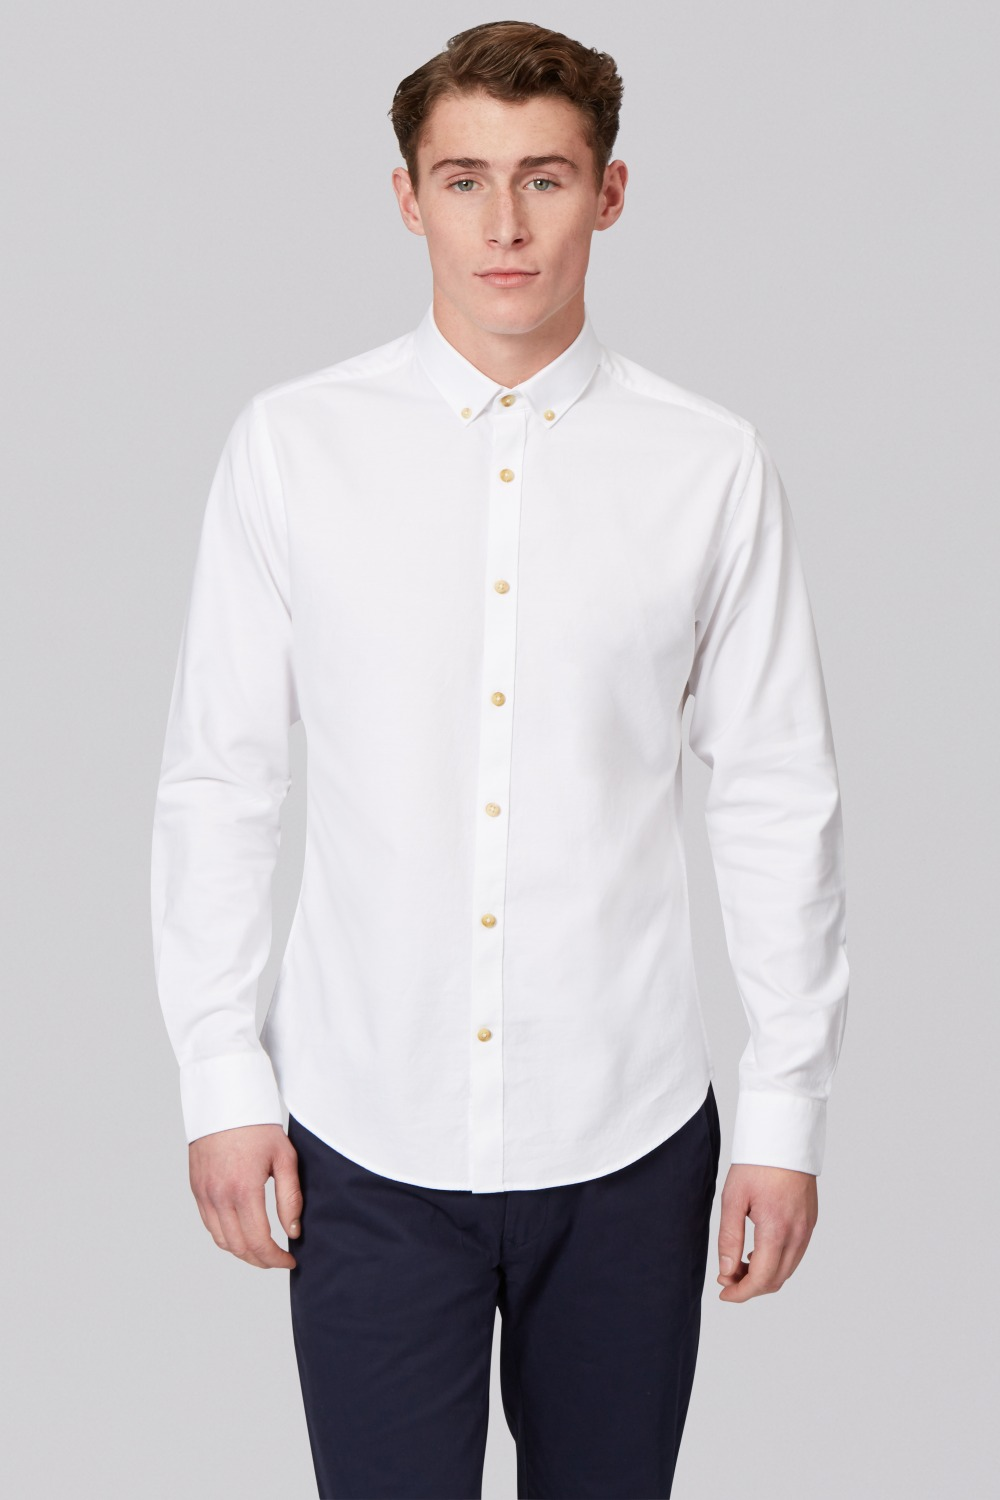 White Oxford Shirt Womens